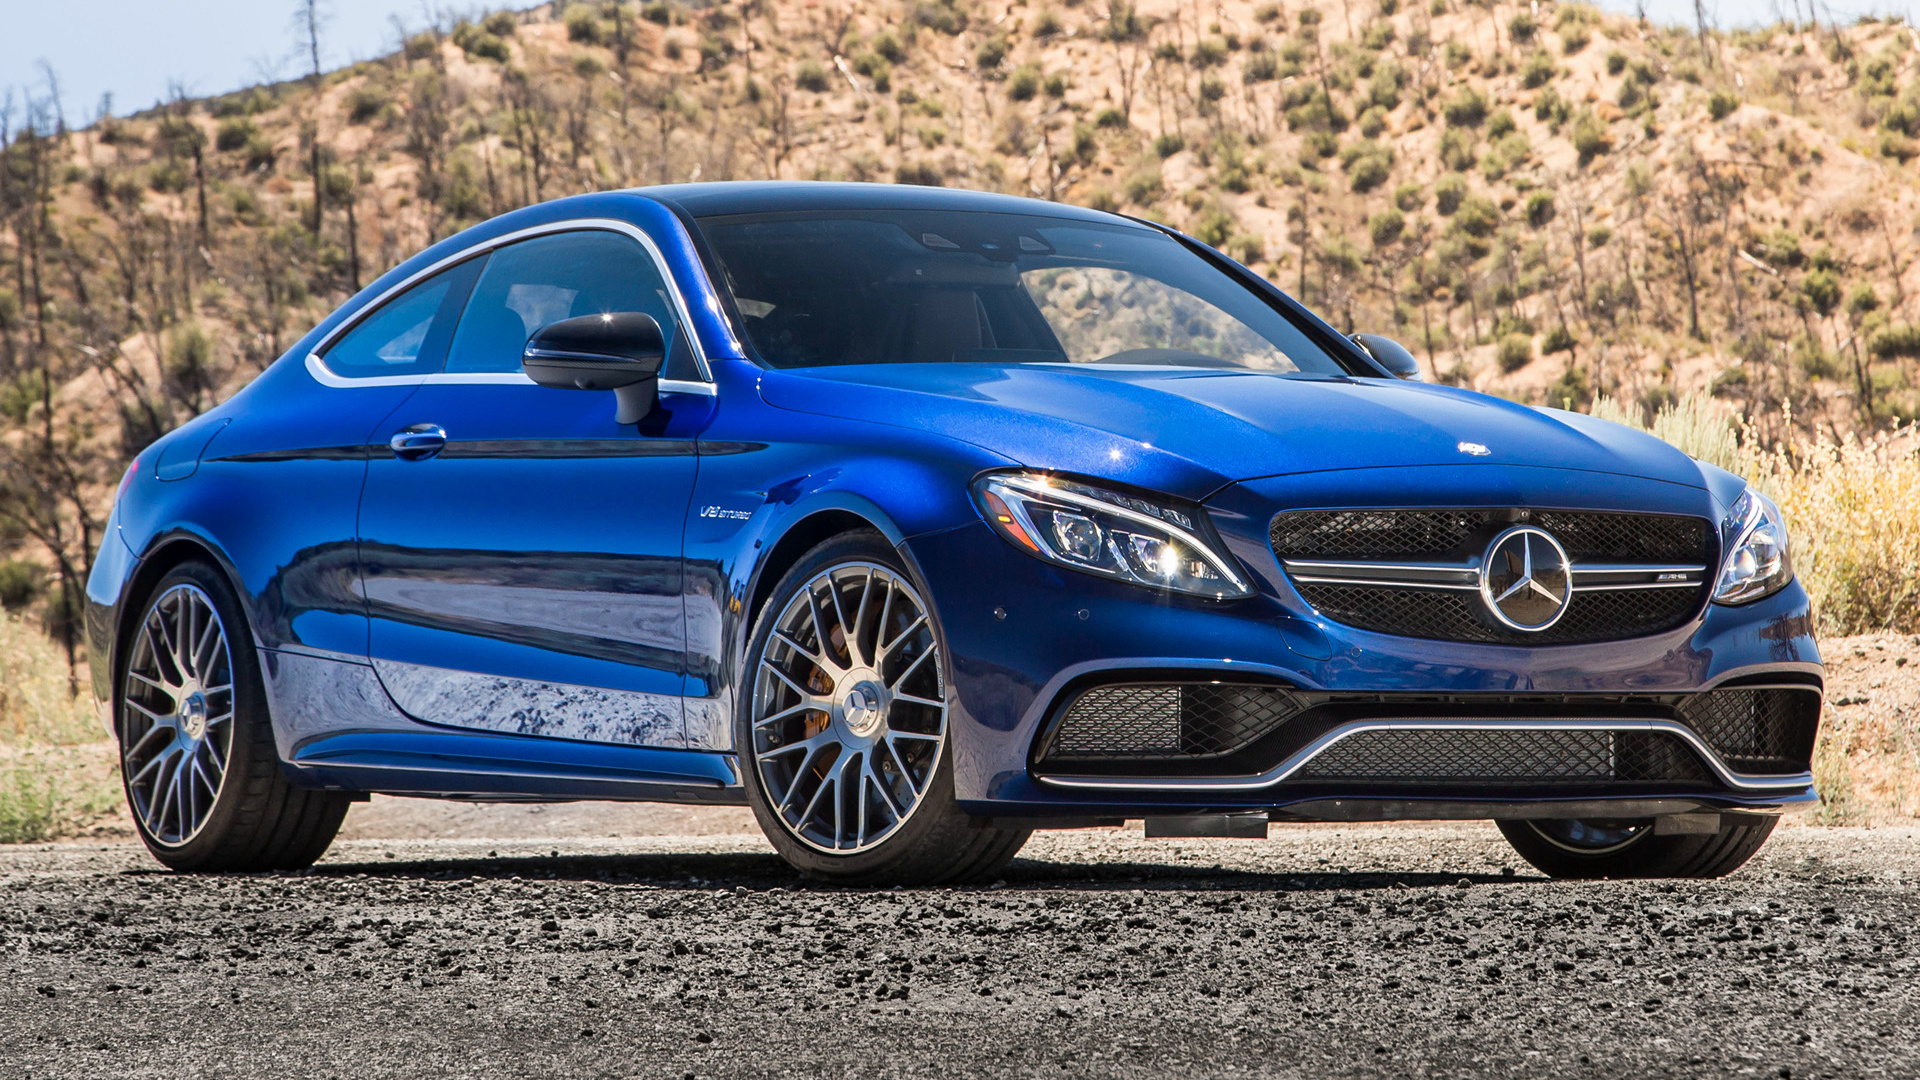 2017 Mercedes Benz C Class >> 2017 Mercedes-AMG C 63 S Coupe (US) - Wallpapers and HD ...